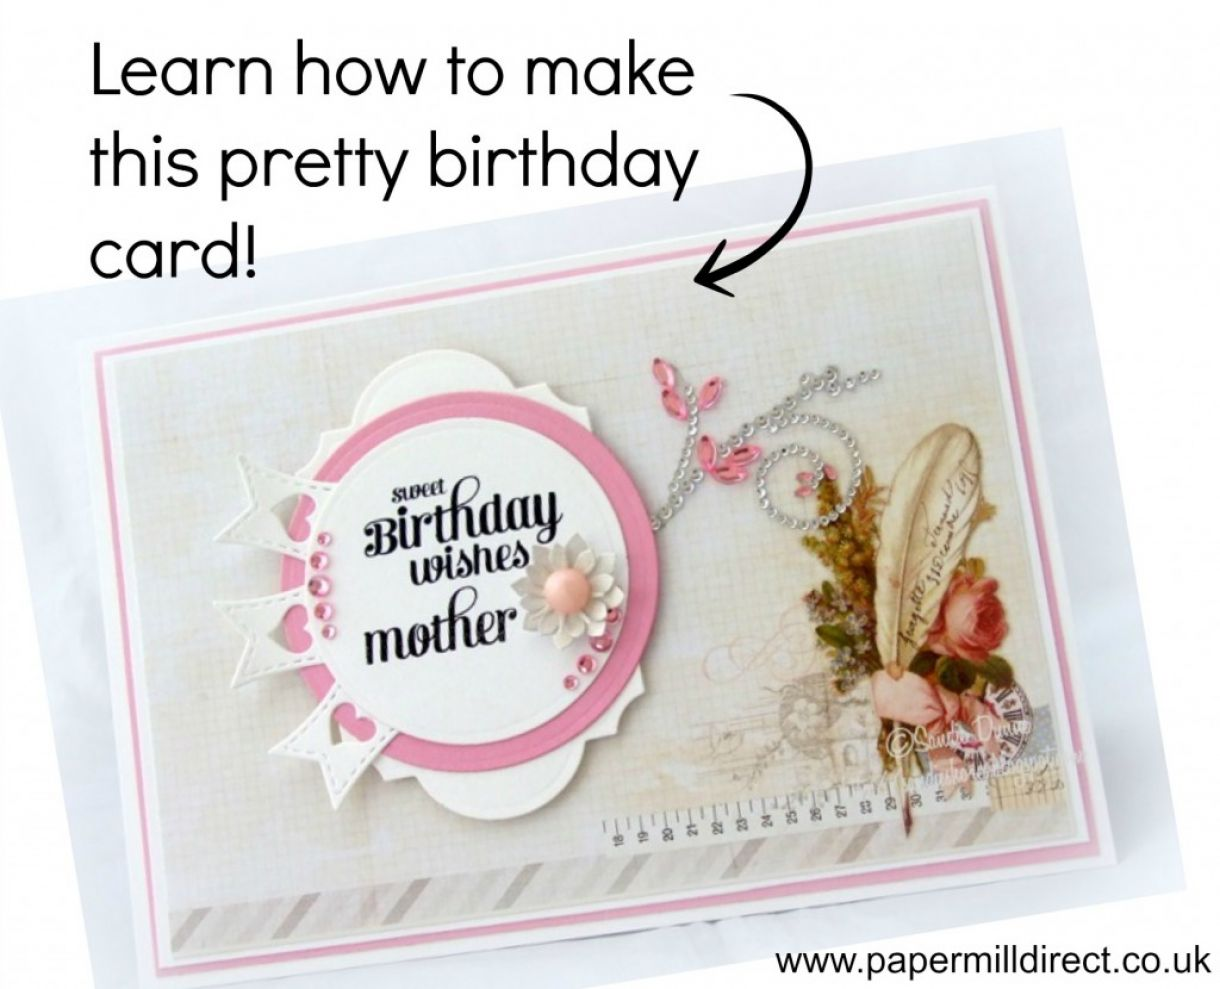 Make a birthday card sweet birthday wishes bookmarktalkfo Choice Image